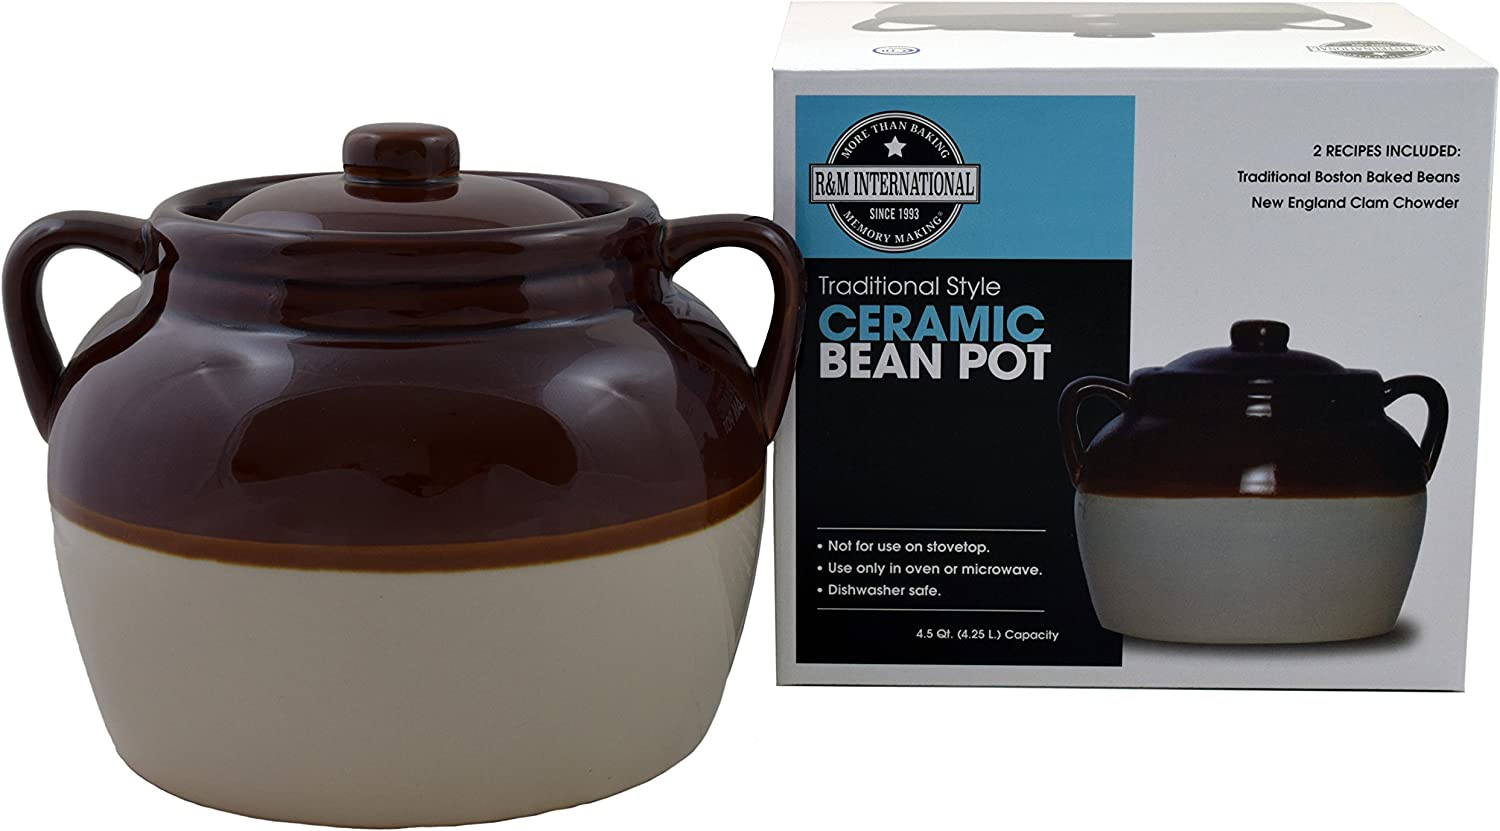 R&M International 7621 Traditional Style 4.5-Quart Large Ceramic Bean Pot